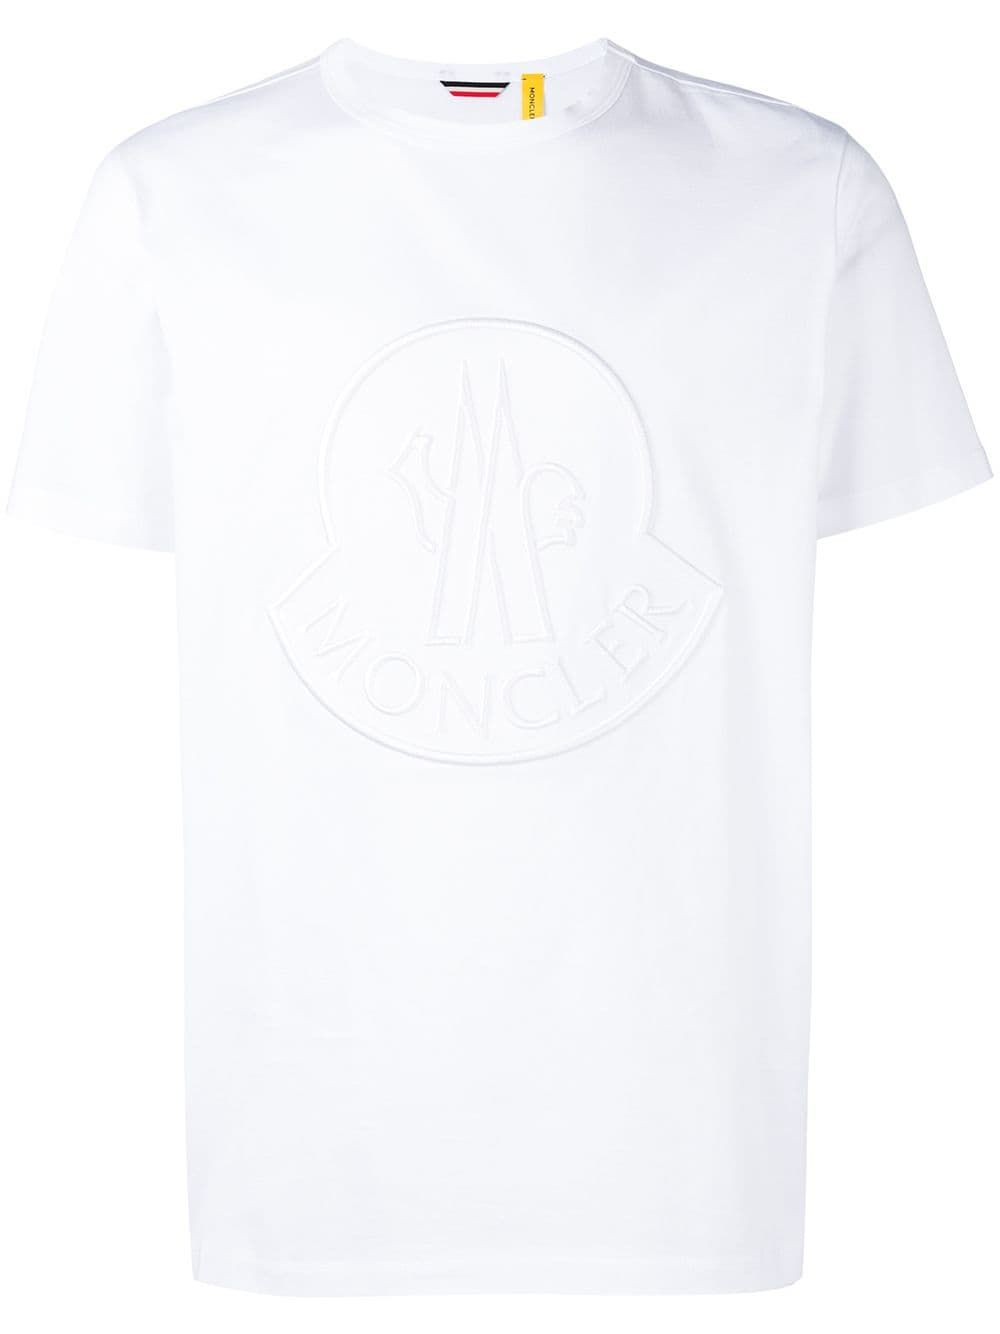 a794dbc7 MONCLER MONCLER LOGO PATCH T-SHIRT - WHITE. #moncler #cloth ...